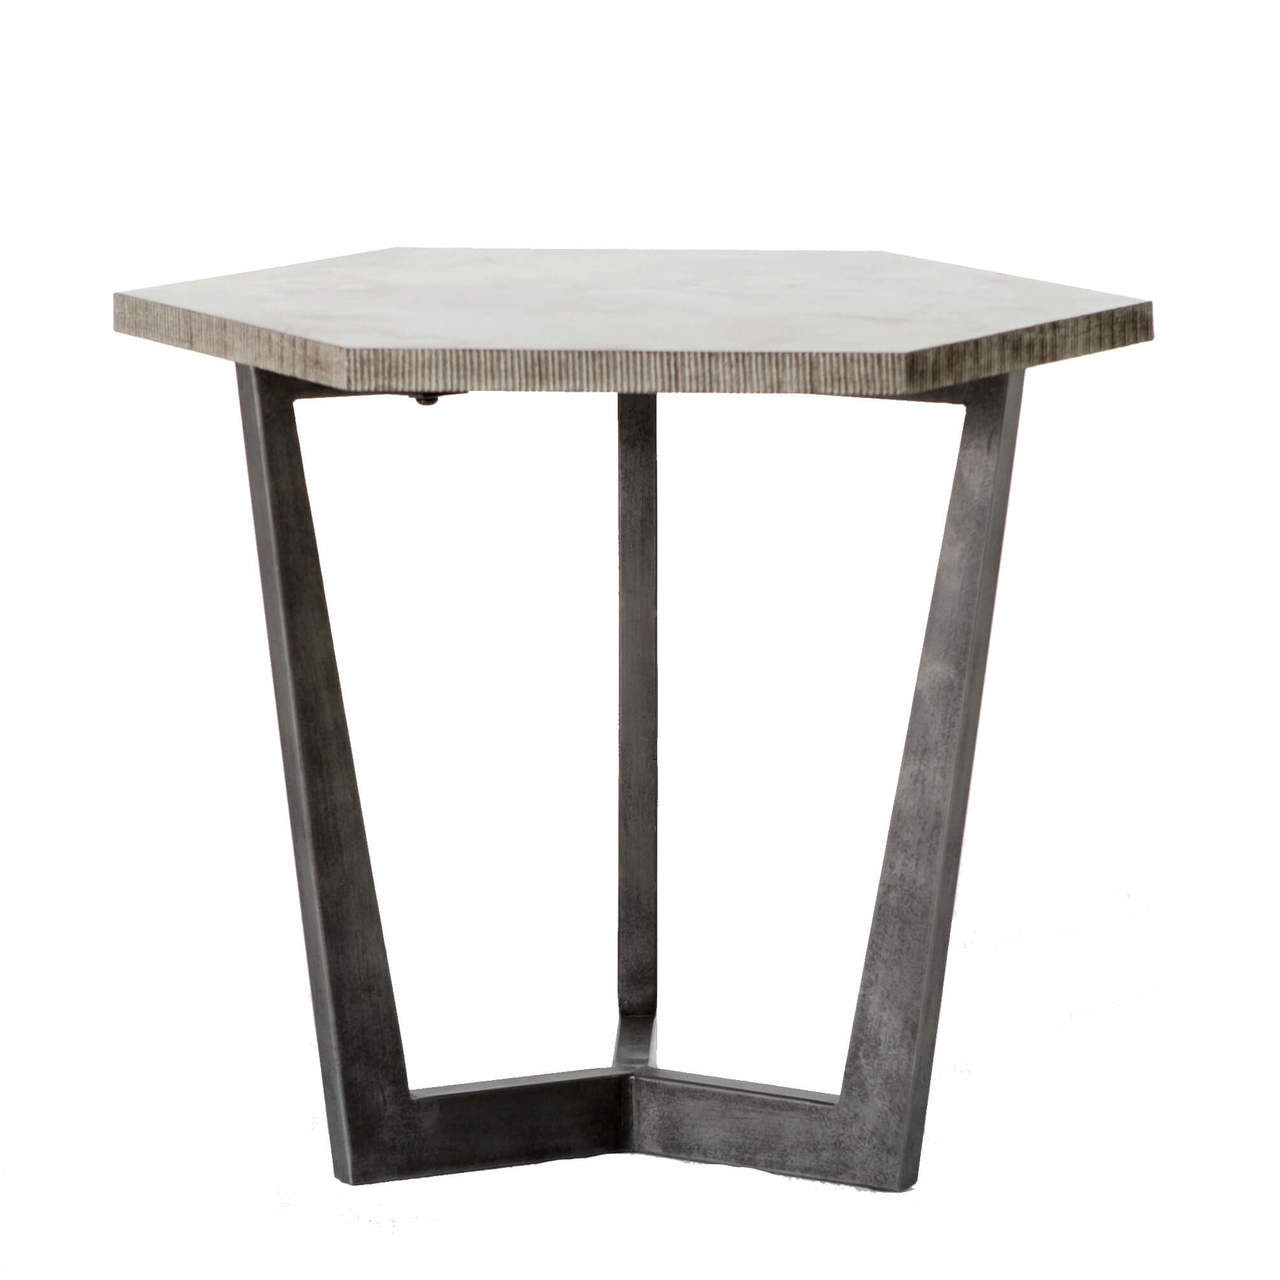 Astounding Quentin Industrial Iron Bluestone Hexagon End Table Pabps2019 Chair Design Images Pabps2019Com